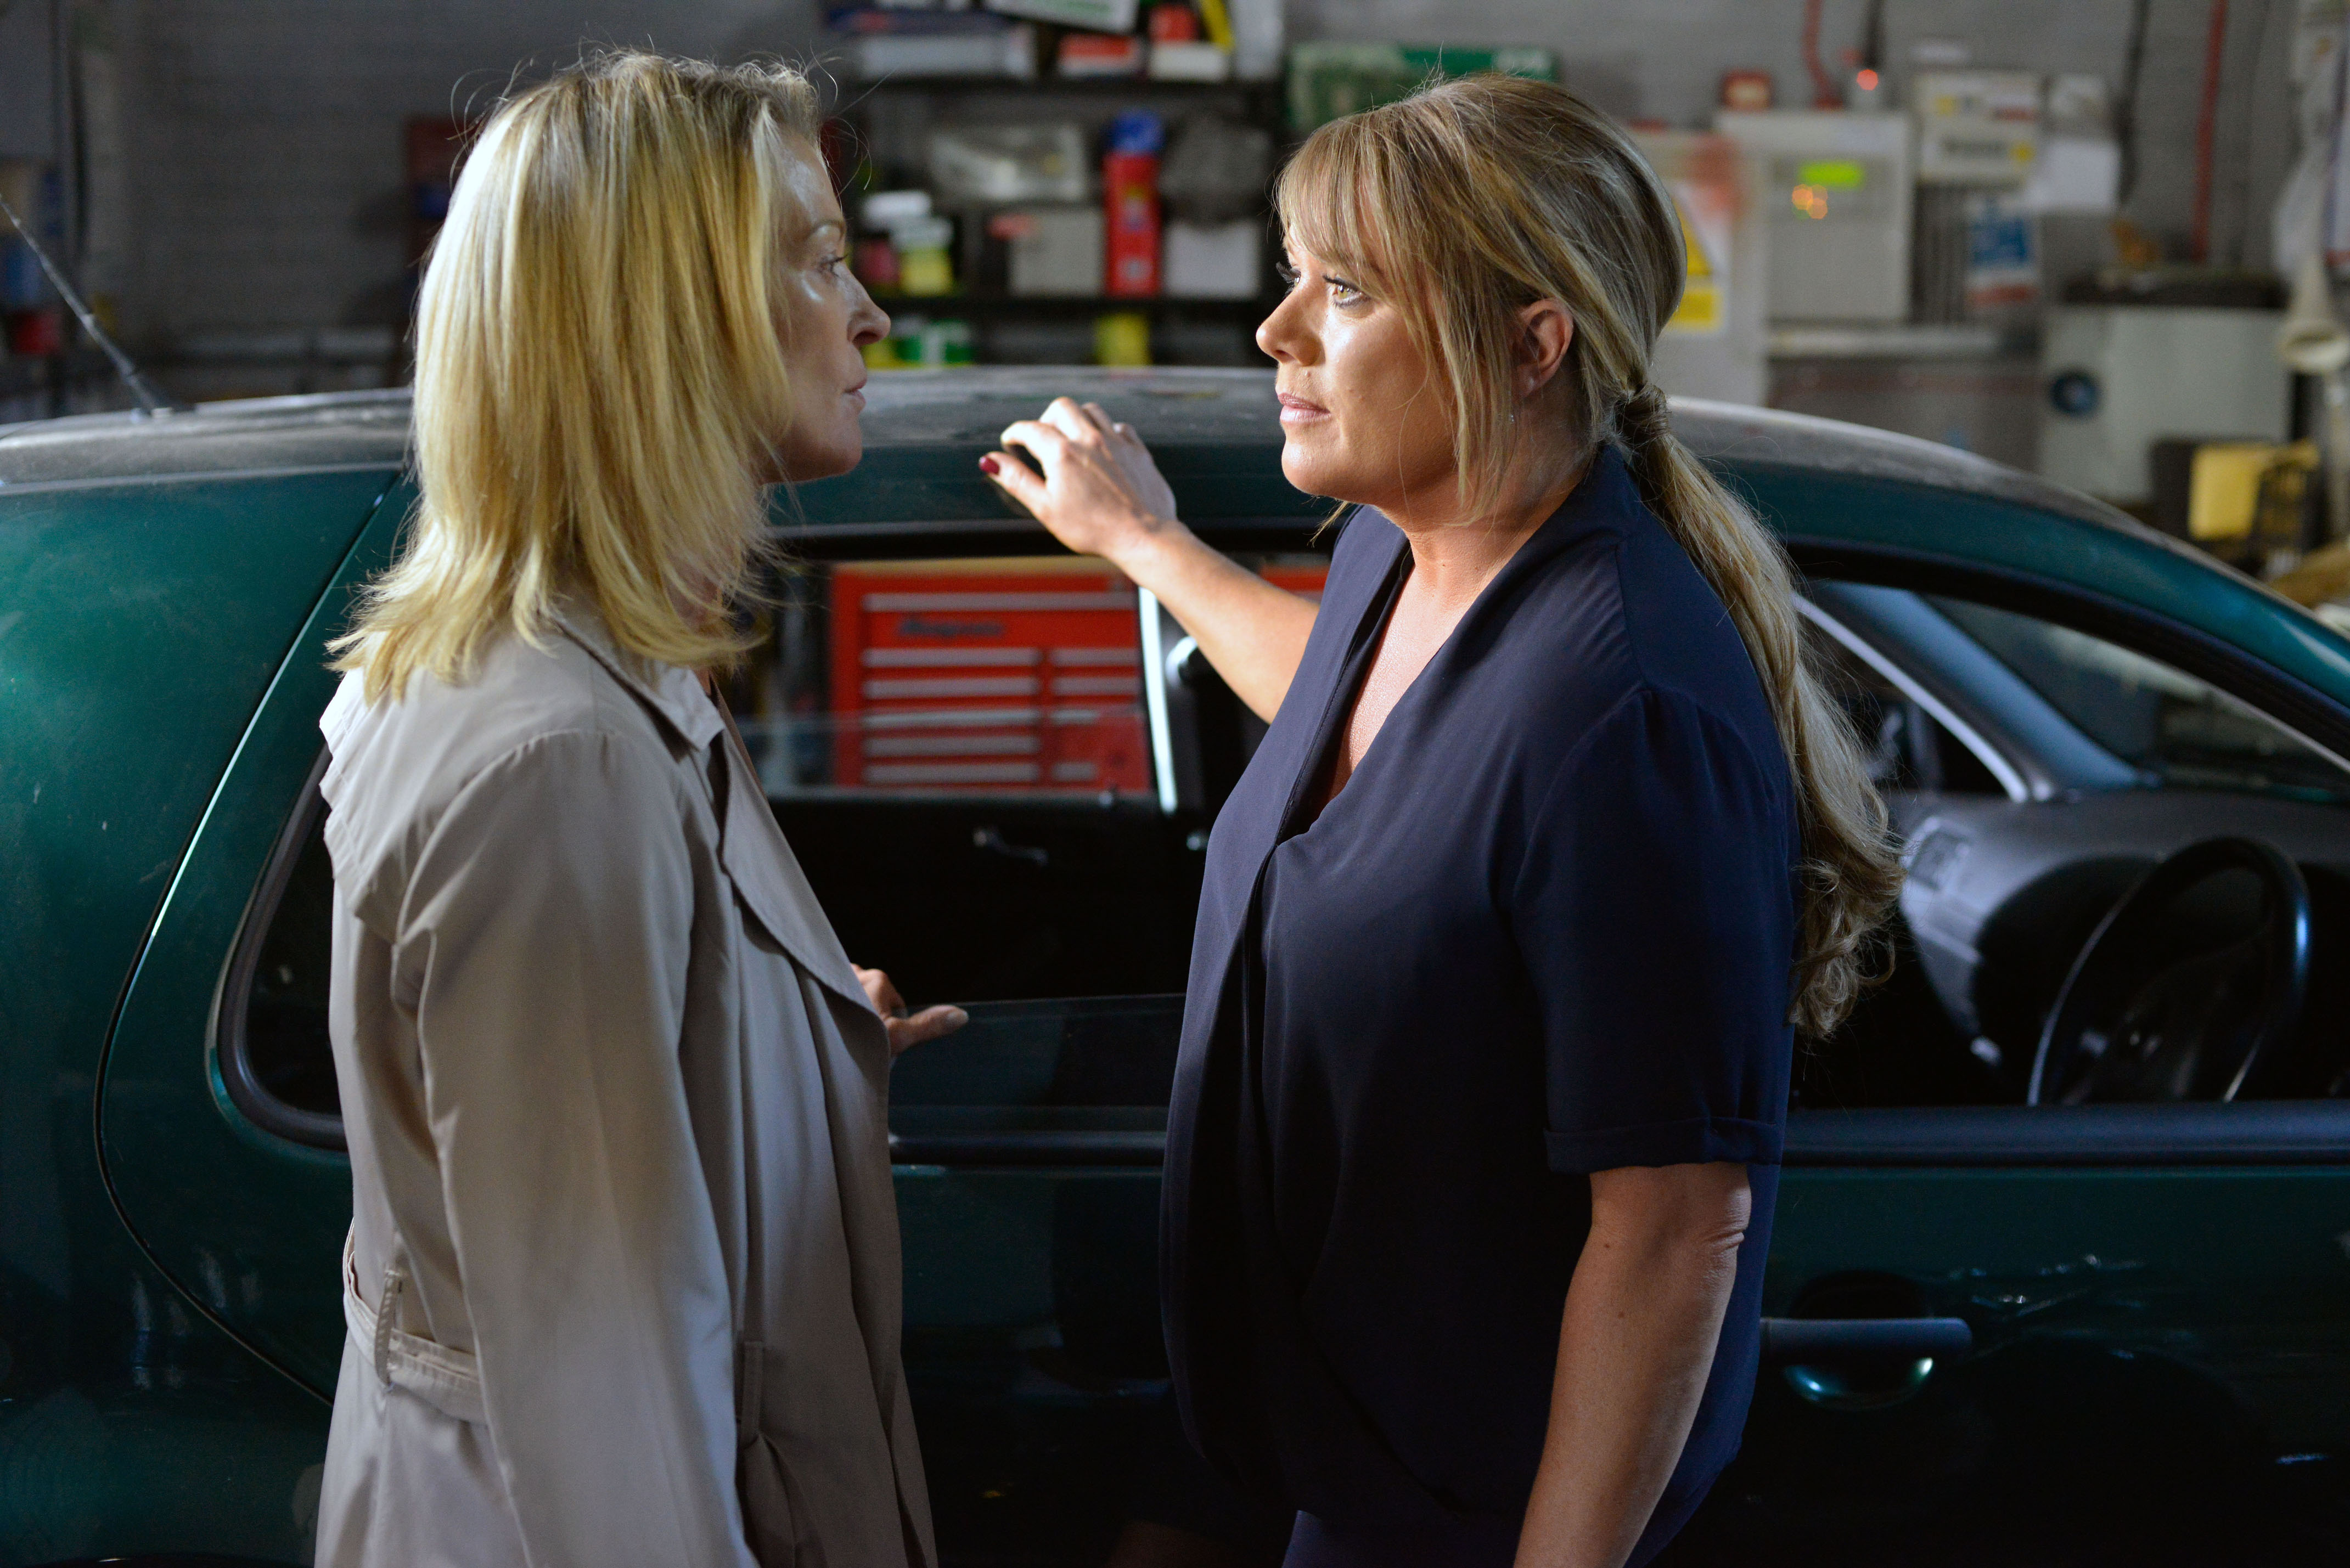 WARNING: Embargoed for publication until 08/09/2015 - Programme Name: EastEnders - TX: 14/09/2015 - Episode: 5137 (No. n/a) - Picture Shows: Sharon comes face to face with Kathy. Kathy Sullivan (GILLIAN TAYLFORTH), Sharon Mitchell (LETITIA DEAN) - (C) BBC - Photographer: Kieron McCarron